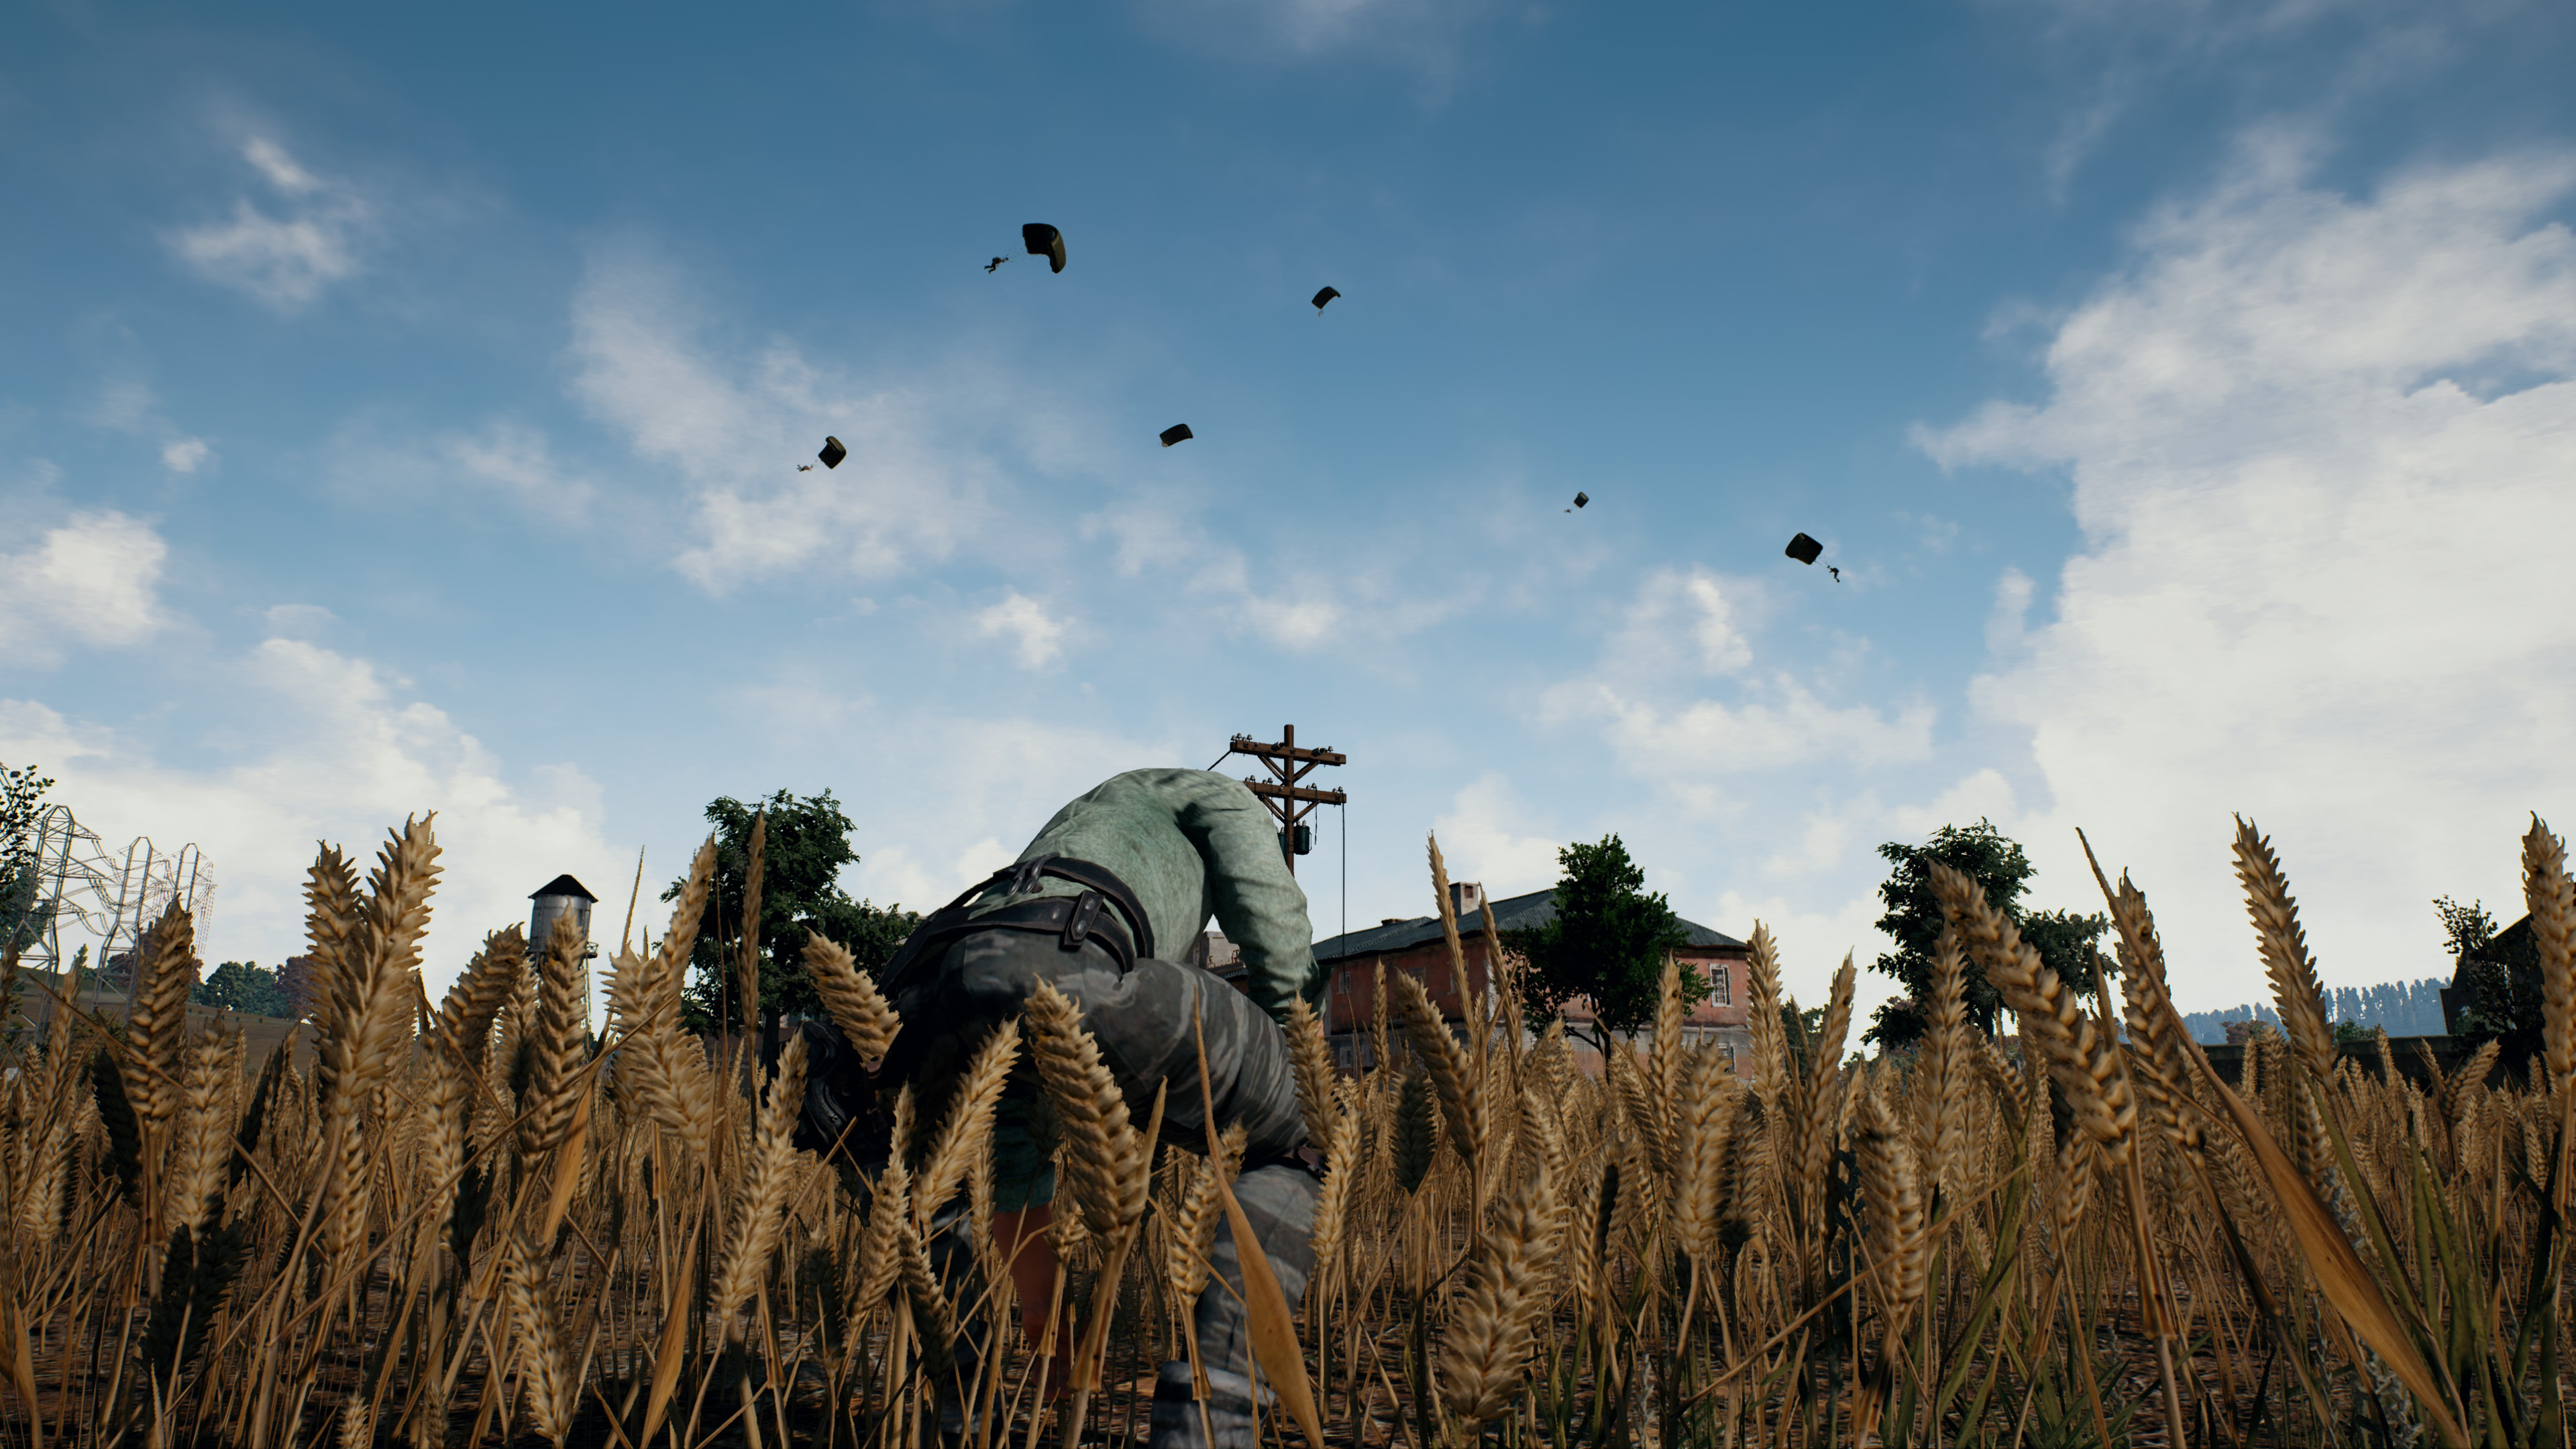 High Resolution Pubg Wallpaper 4k: Playerunknown's Battlegrounds 4K Screenshots: High-Res